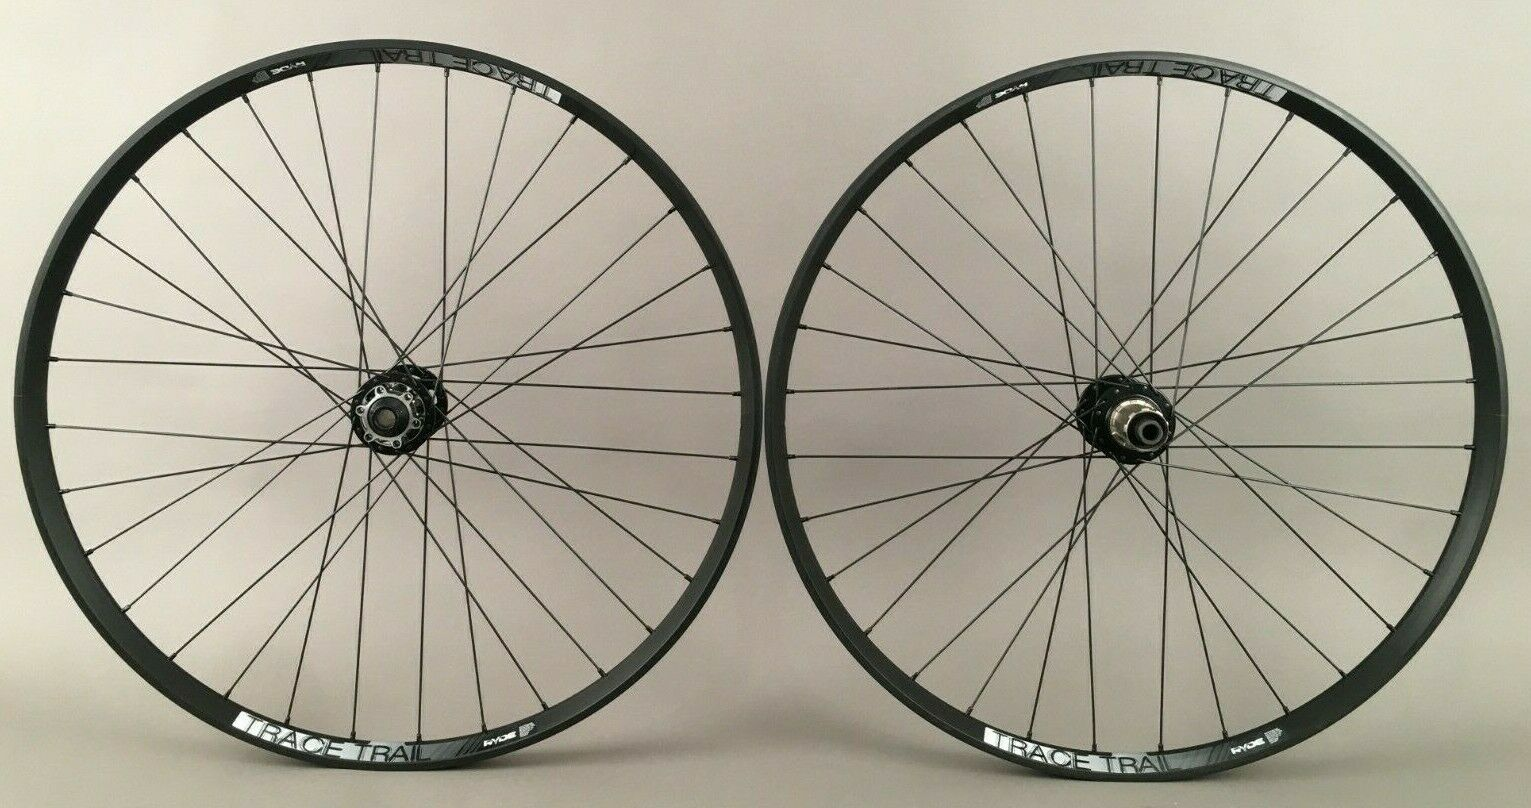 "Ryde Trace Trail 25 Rims 27.5"" 650b MTB Bike Wheelset Tubeless"